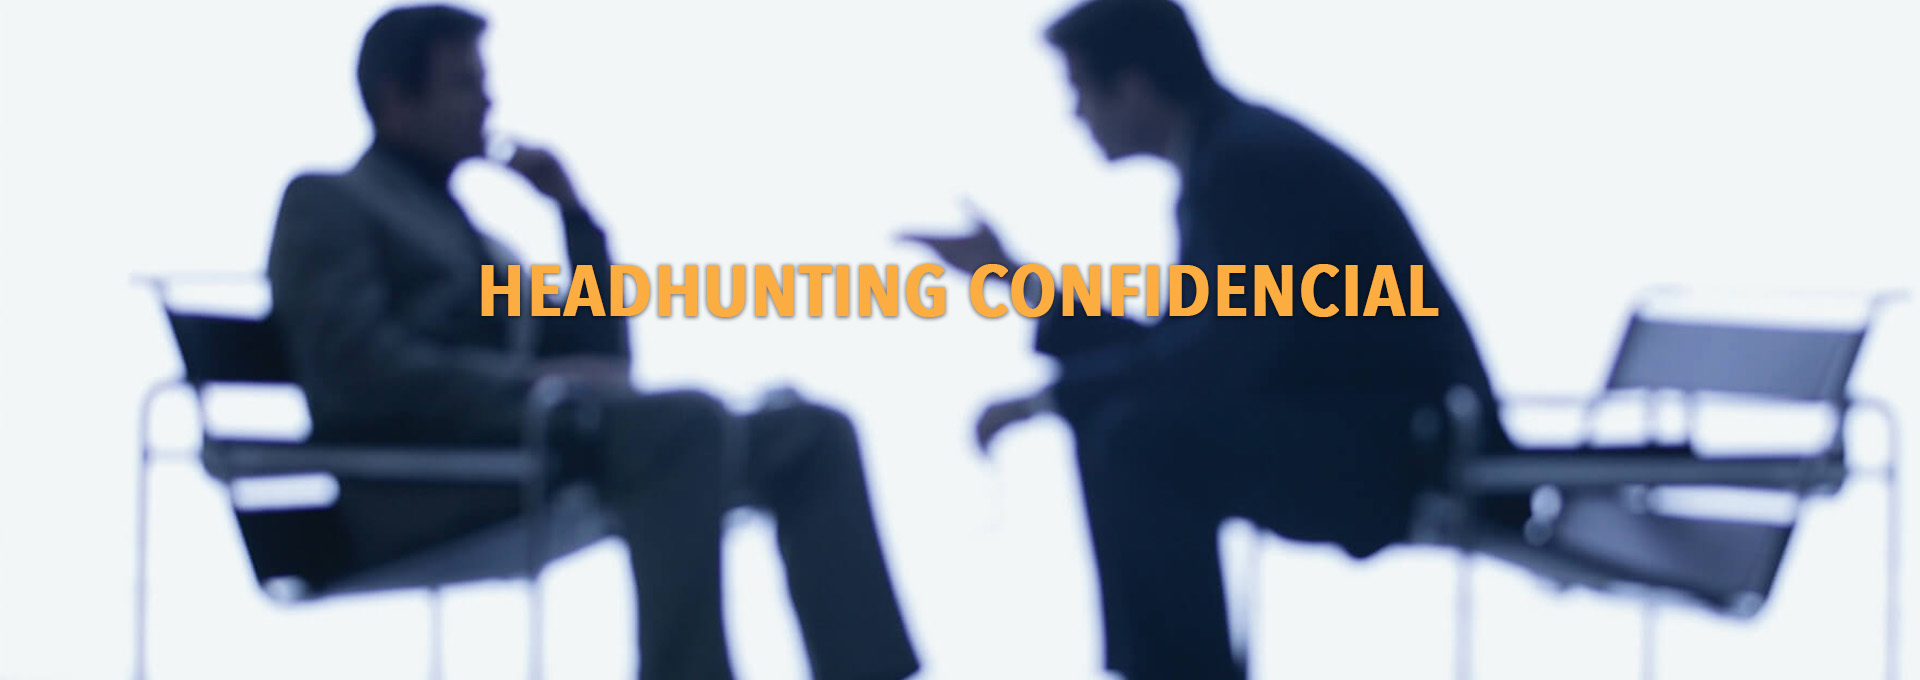 HeadHunting Confidencial